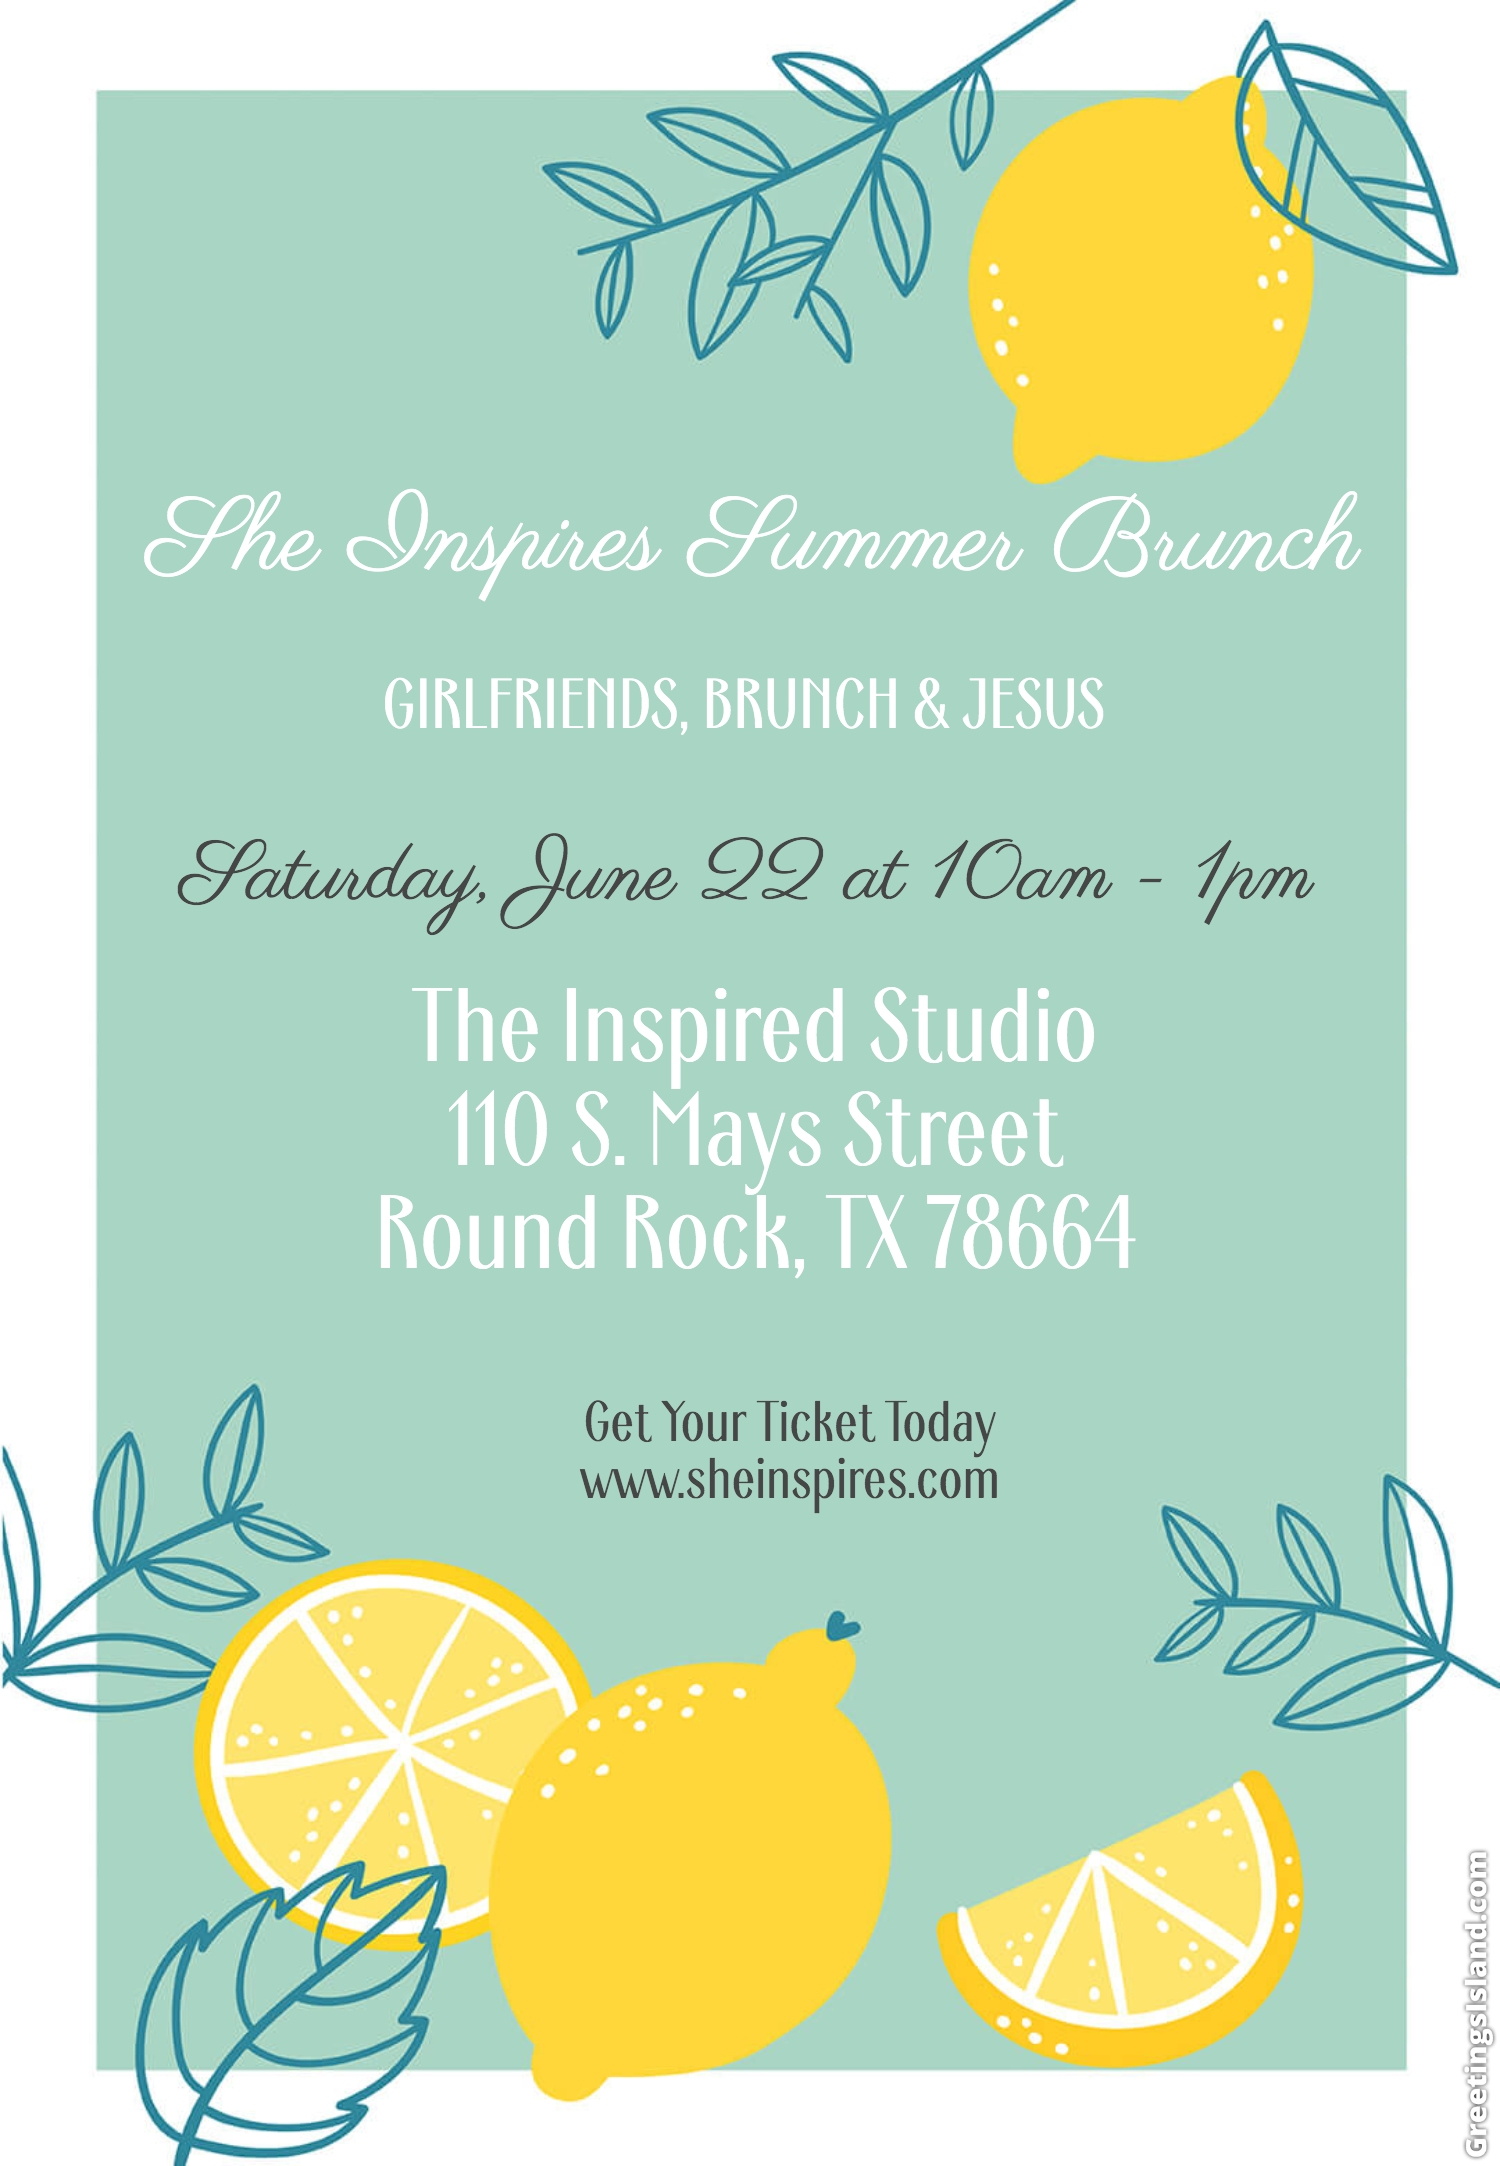 PURCHASE YOUR TICKETS  HERE !!! AND VISIT  THE INSPIRED STUDIO  FOR DETAILS OF THE VENUE!!